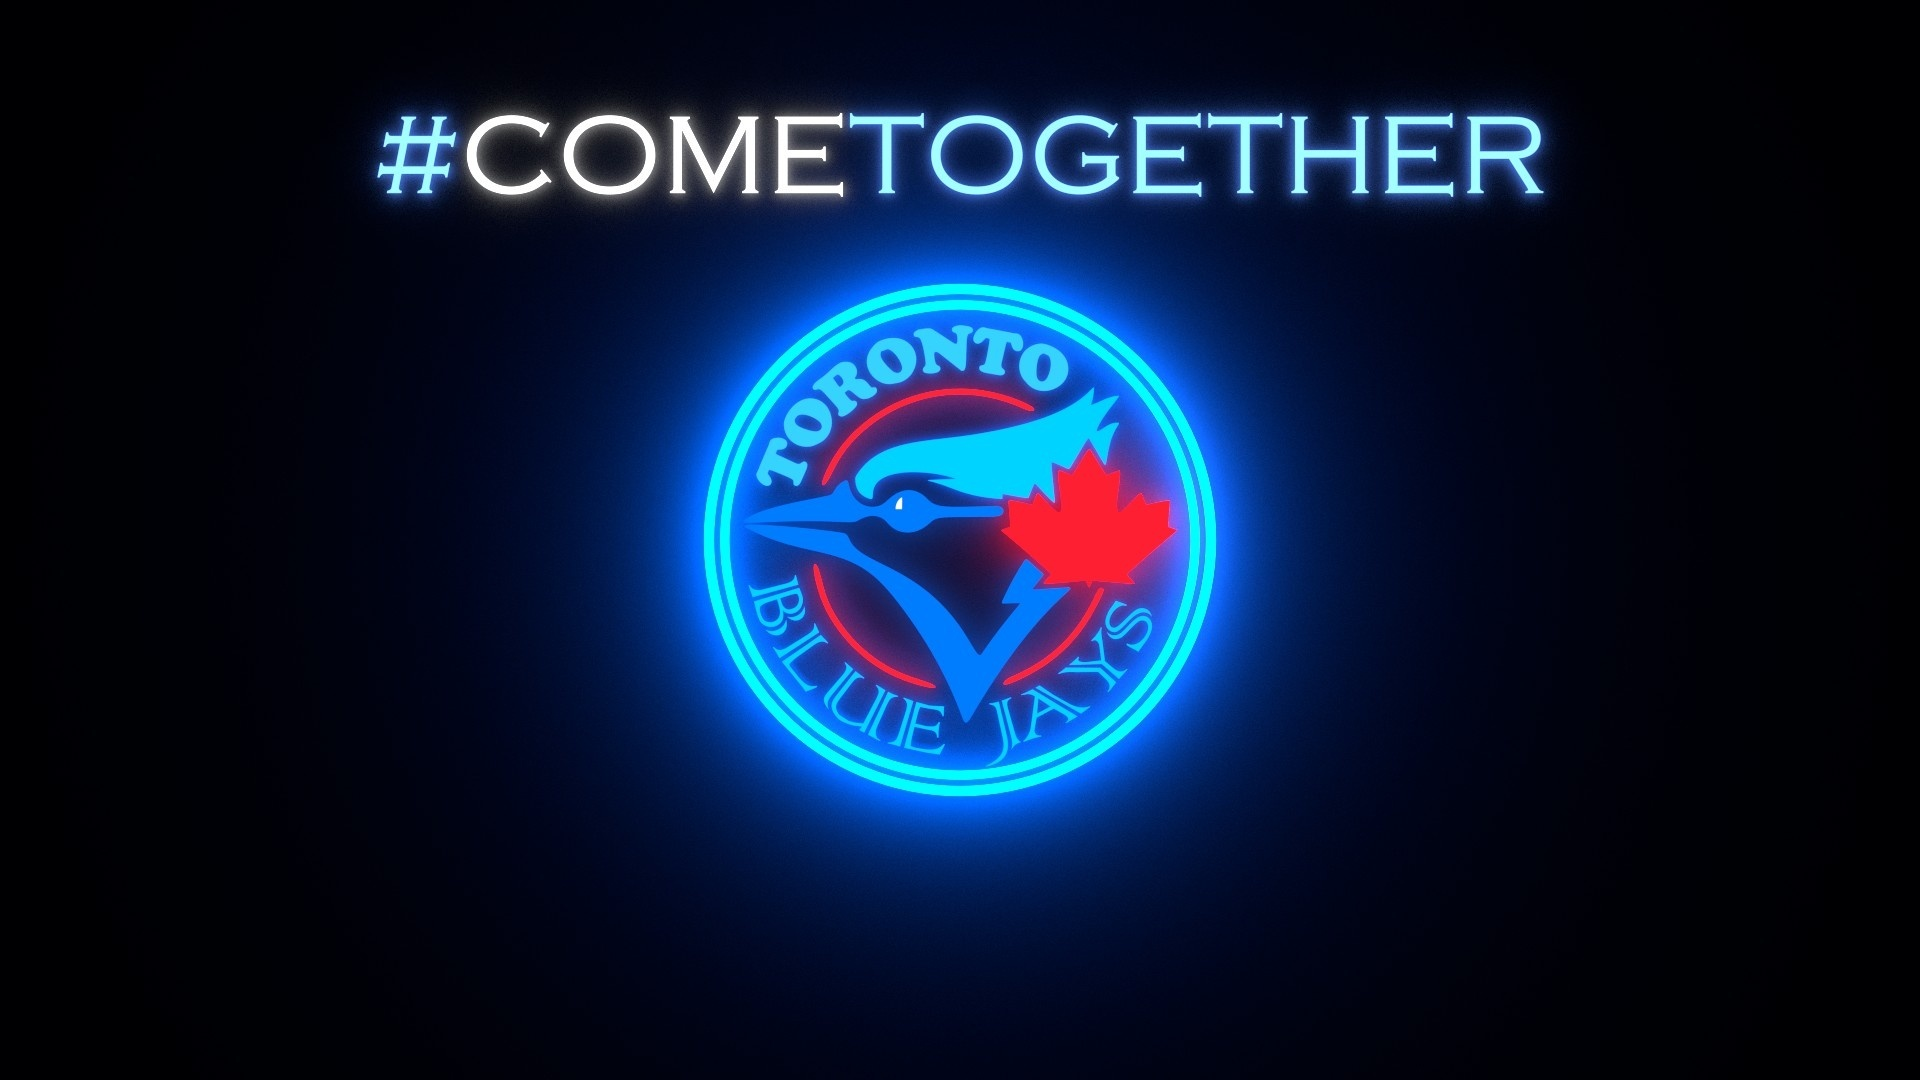 Toronto Blue Jays images Toronto Blue Jays - Come Together HD wallpaper and background photos